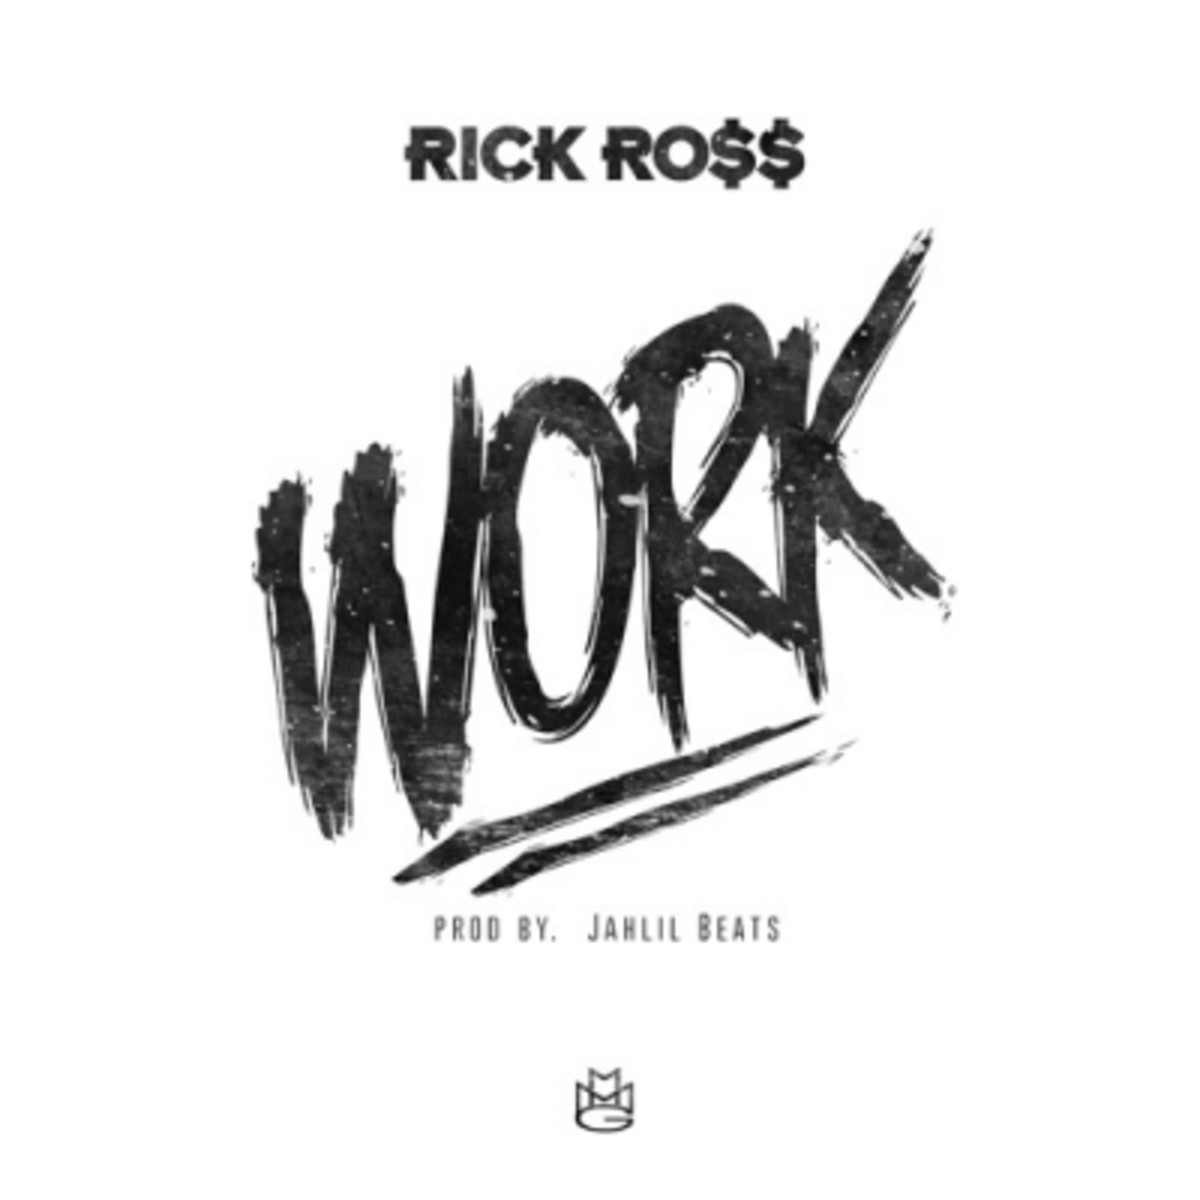 rick-ross-work.jpg